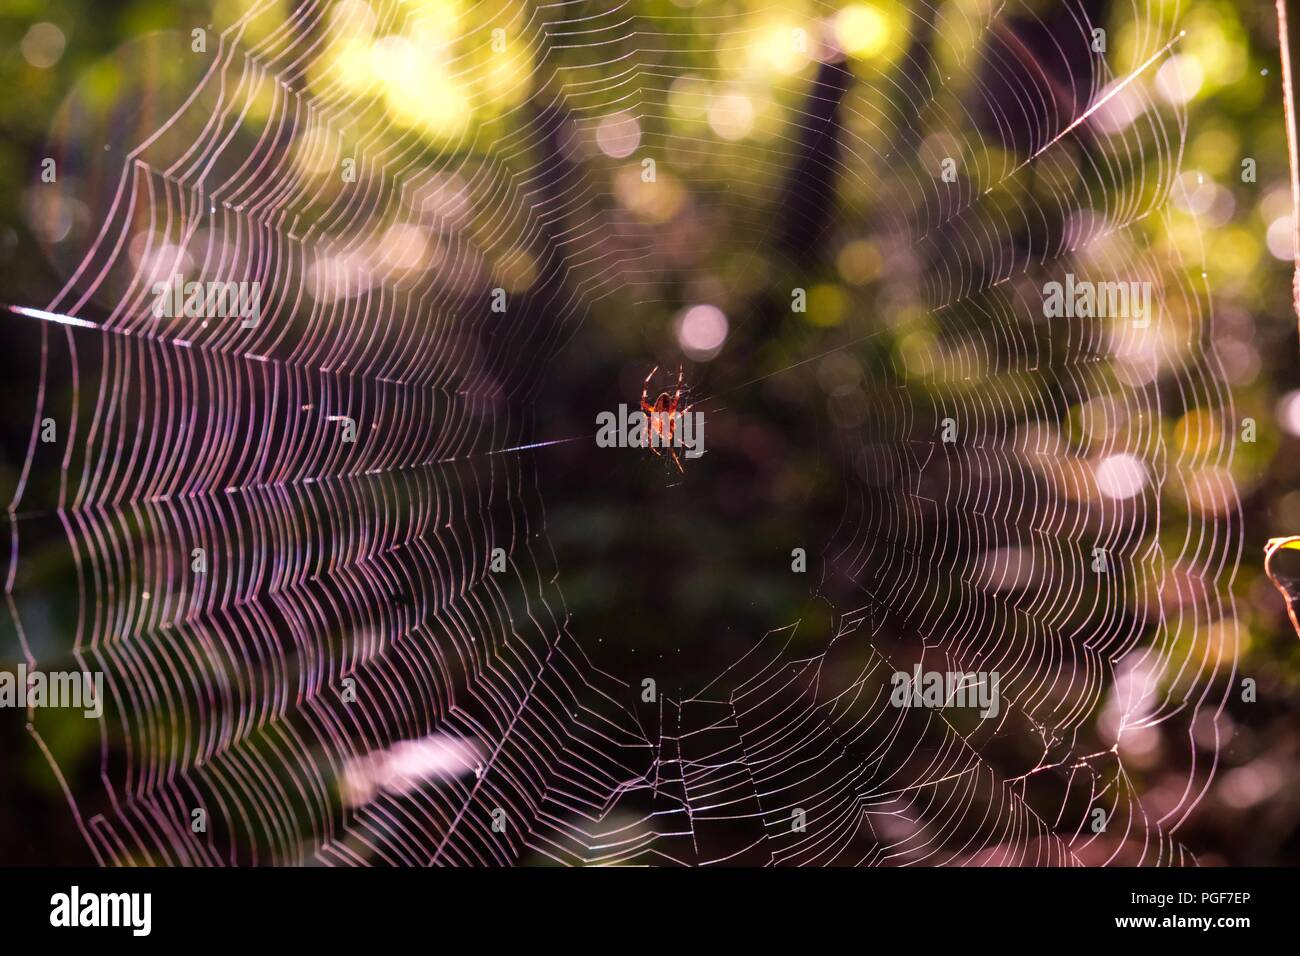 Early morning sunlight brightening up a spotted orb-weaver spider centered on her web at Yates Mill County Park in Raleigh North Carolina - Stock Image